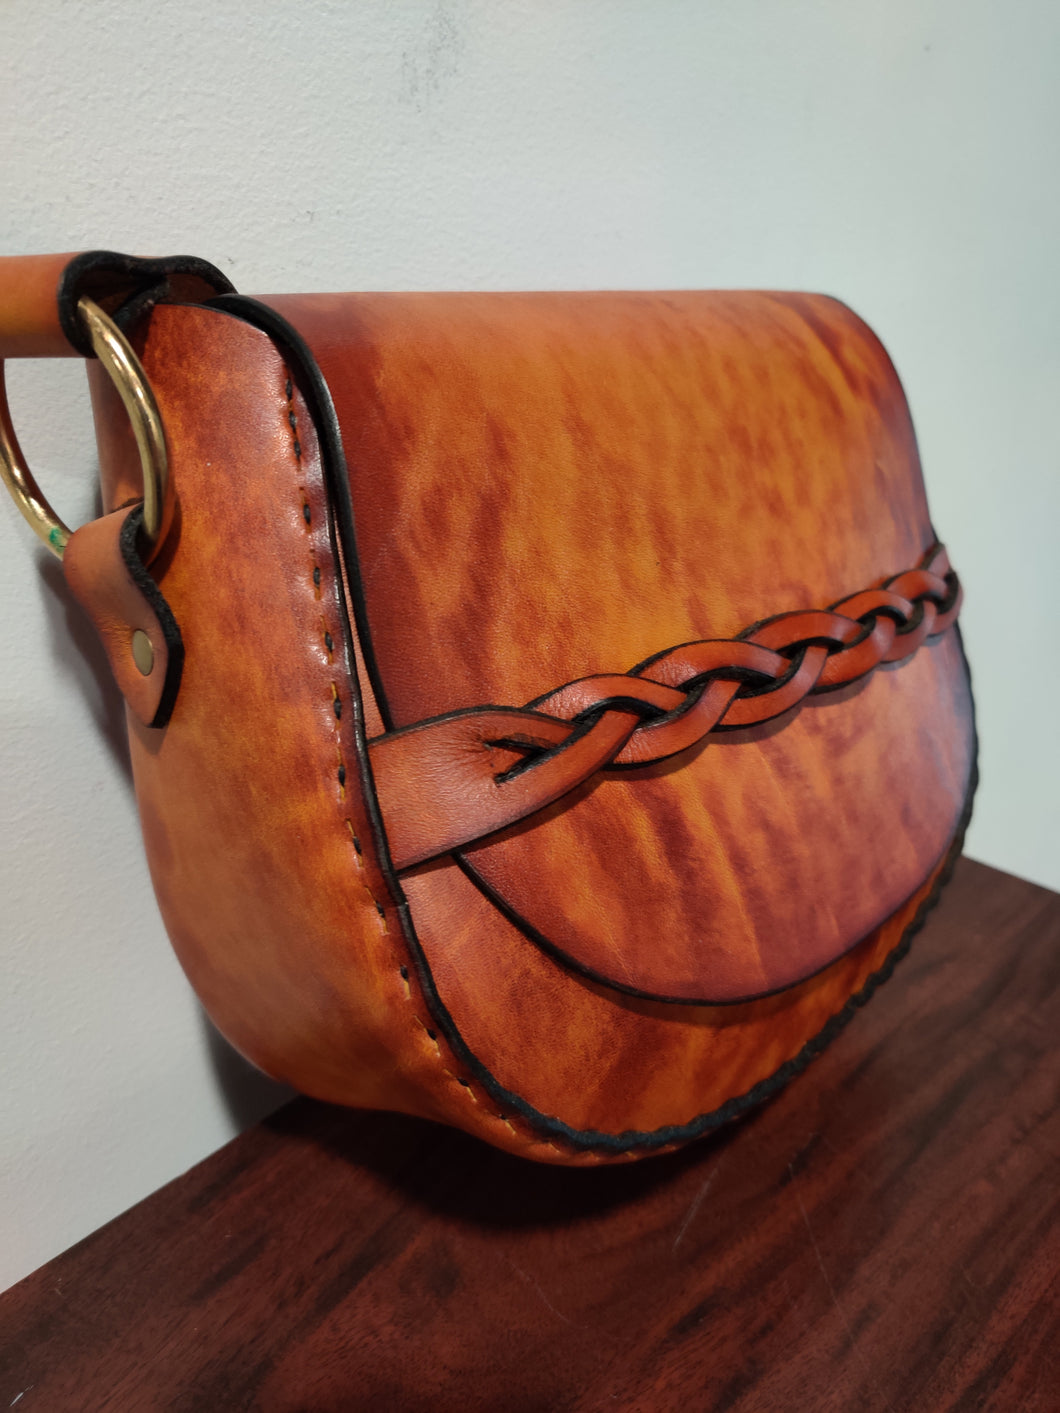 Medium Handmade Latigo Leather Shoulder Bag - Hand-dyed and hand-stitched - Solid Brass hardware with Braided closure